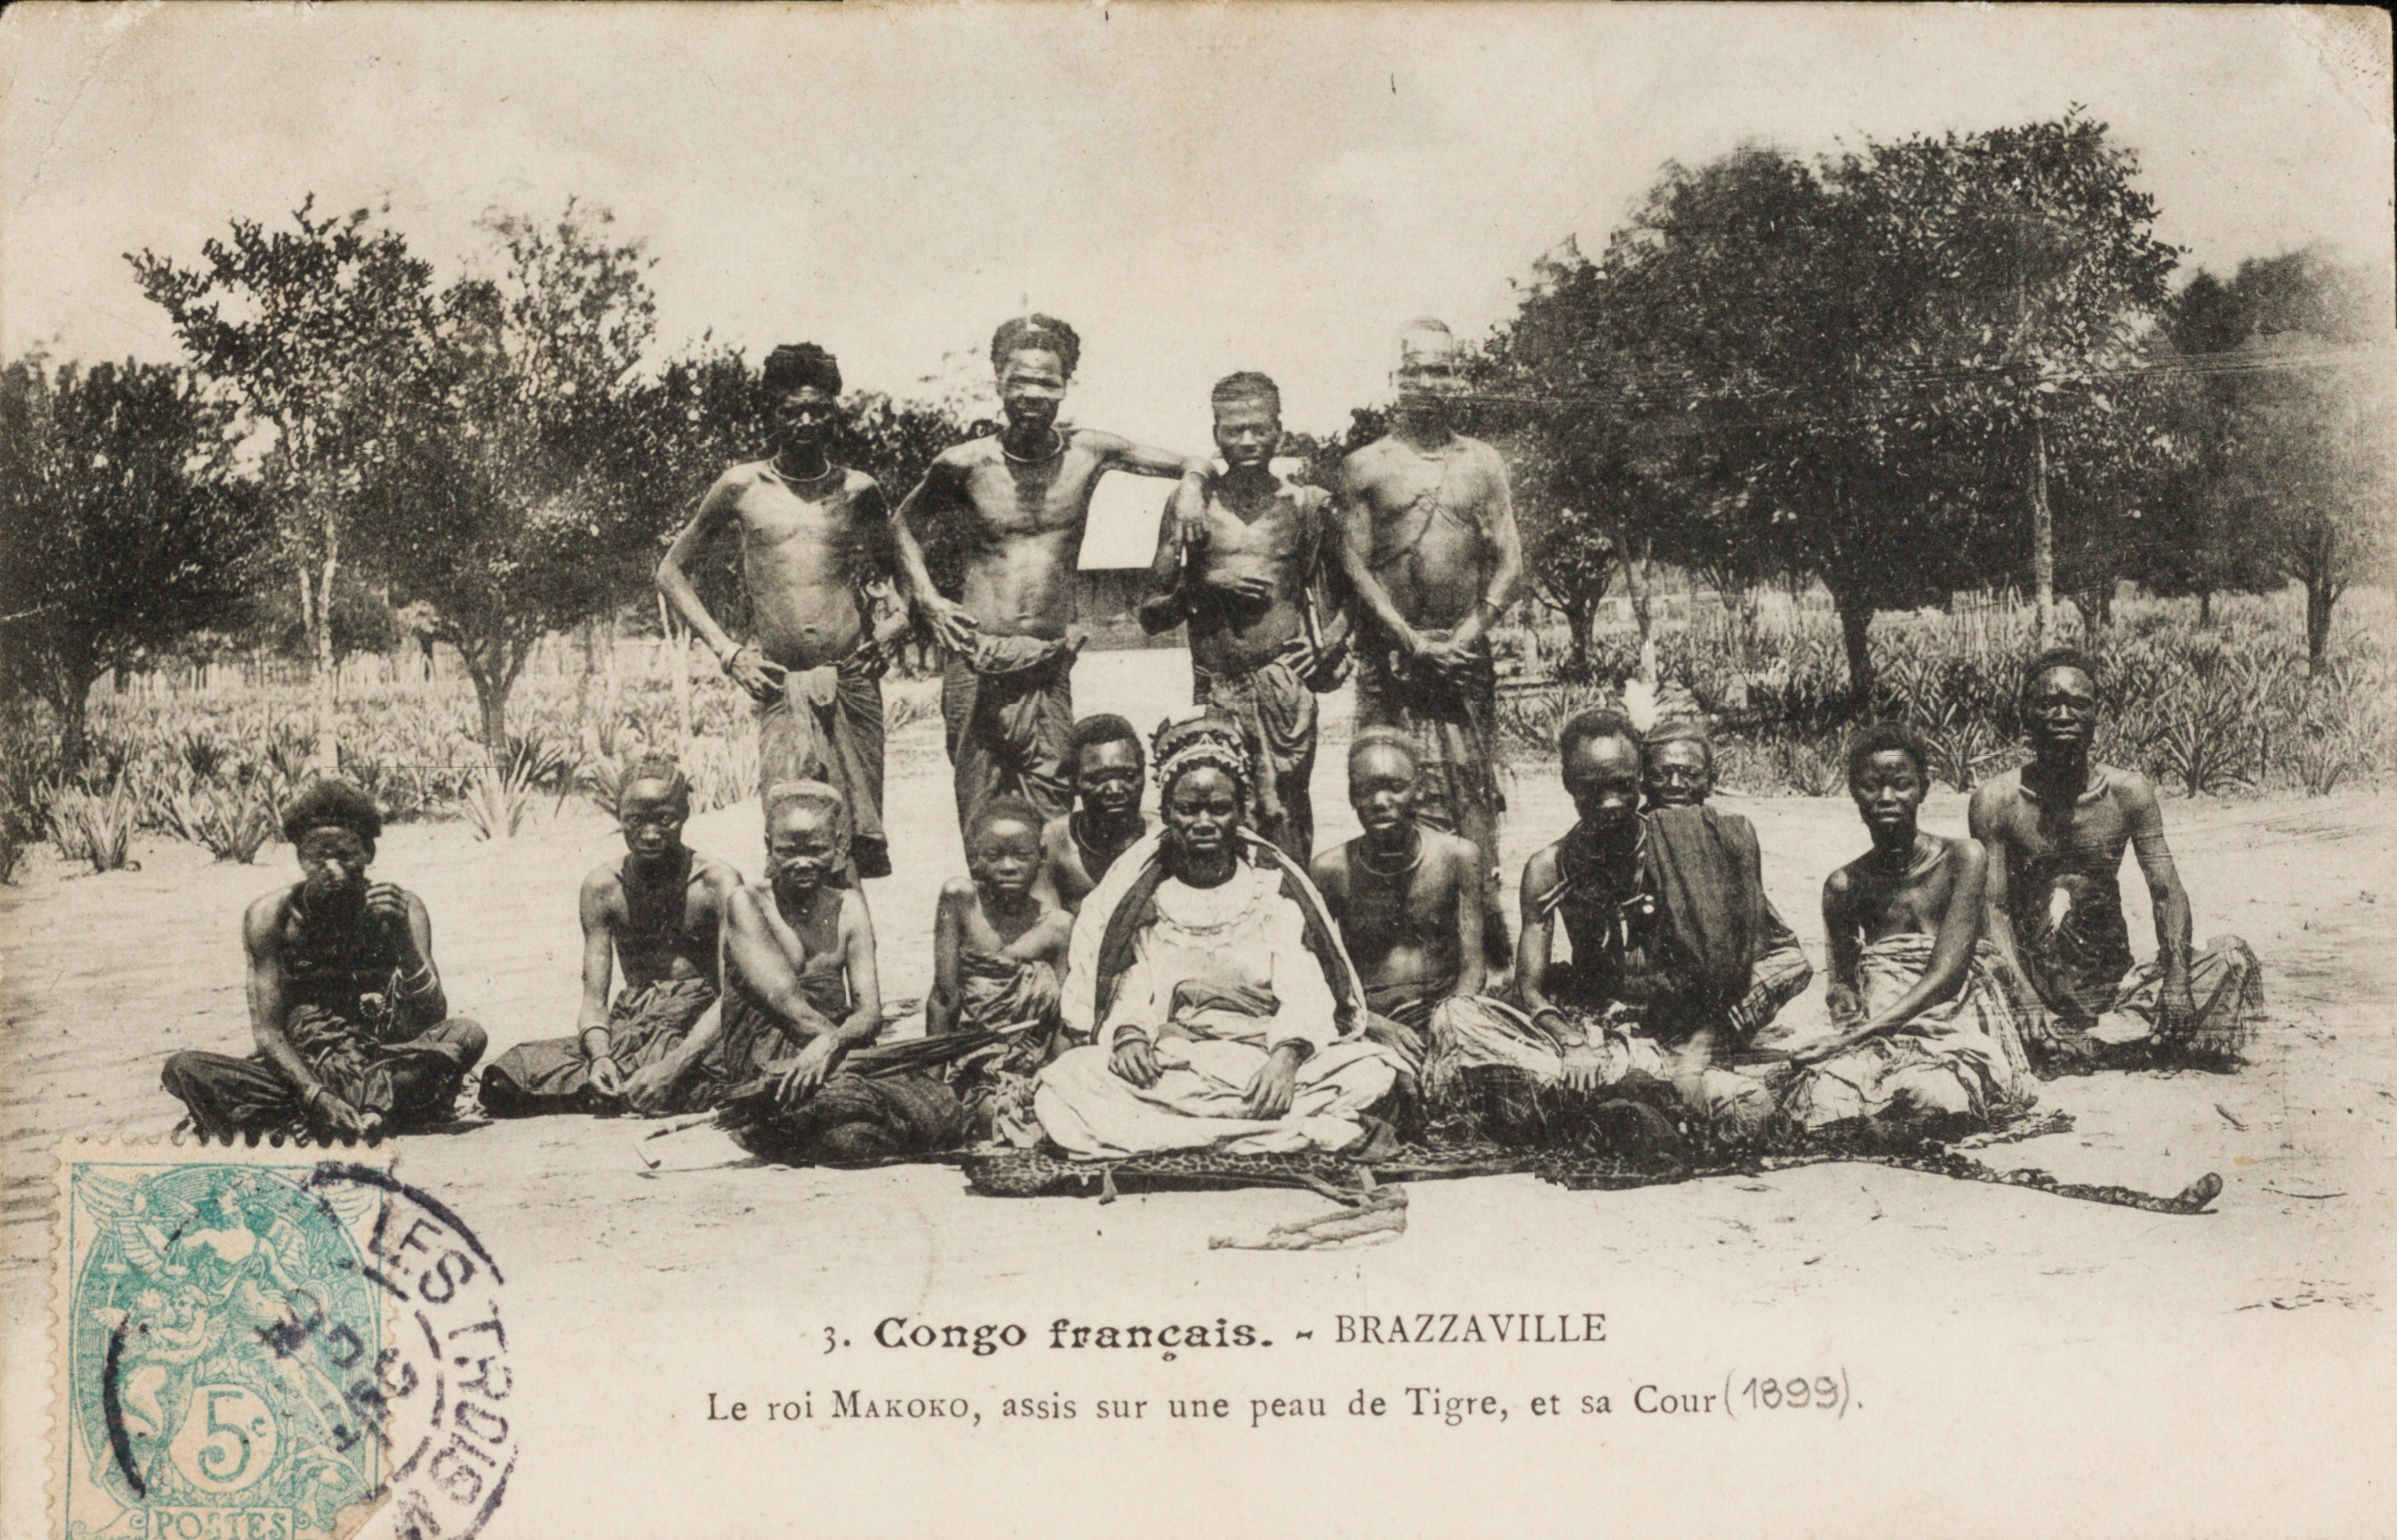 http://upload.wikimedia.org/wikipedia/commons/0/03/Mission_catholique_de_Brazzaville_-_le_roi_Makoko_-_Soci%C3%A9t%C3%A9_de_G%C3%A9ographie_(1907).jpg